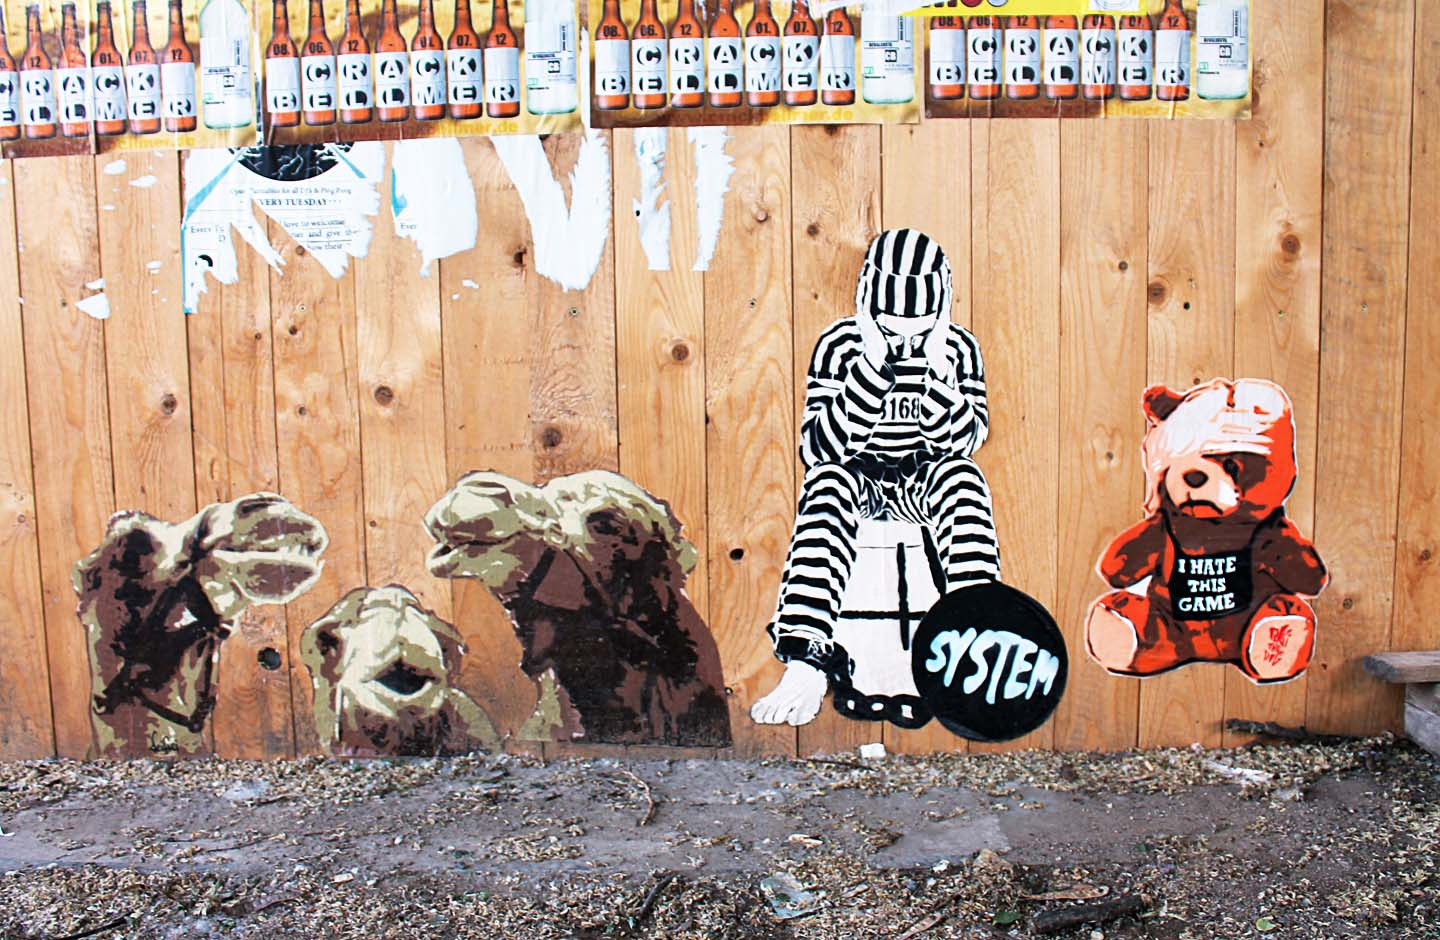 Teddy - I hate this Game from Street Artist Robi the Dog in Berlin